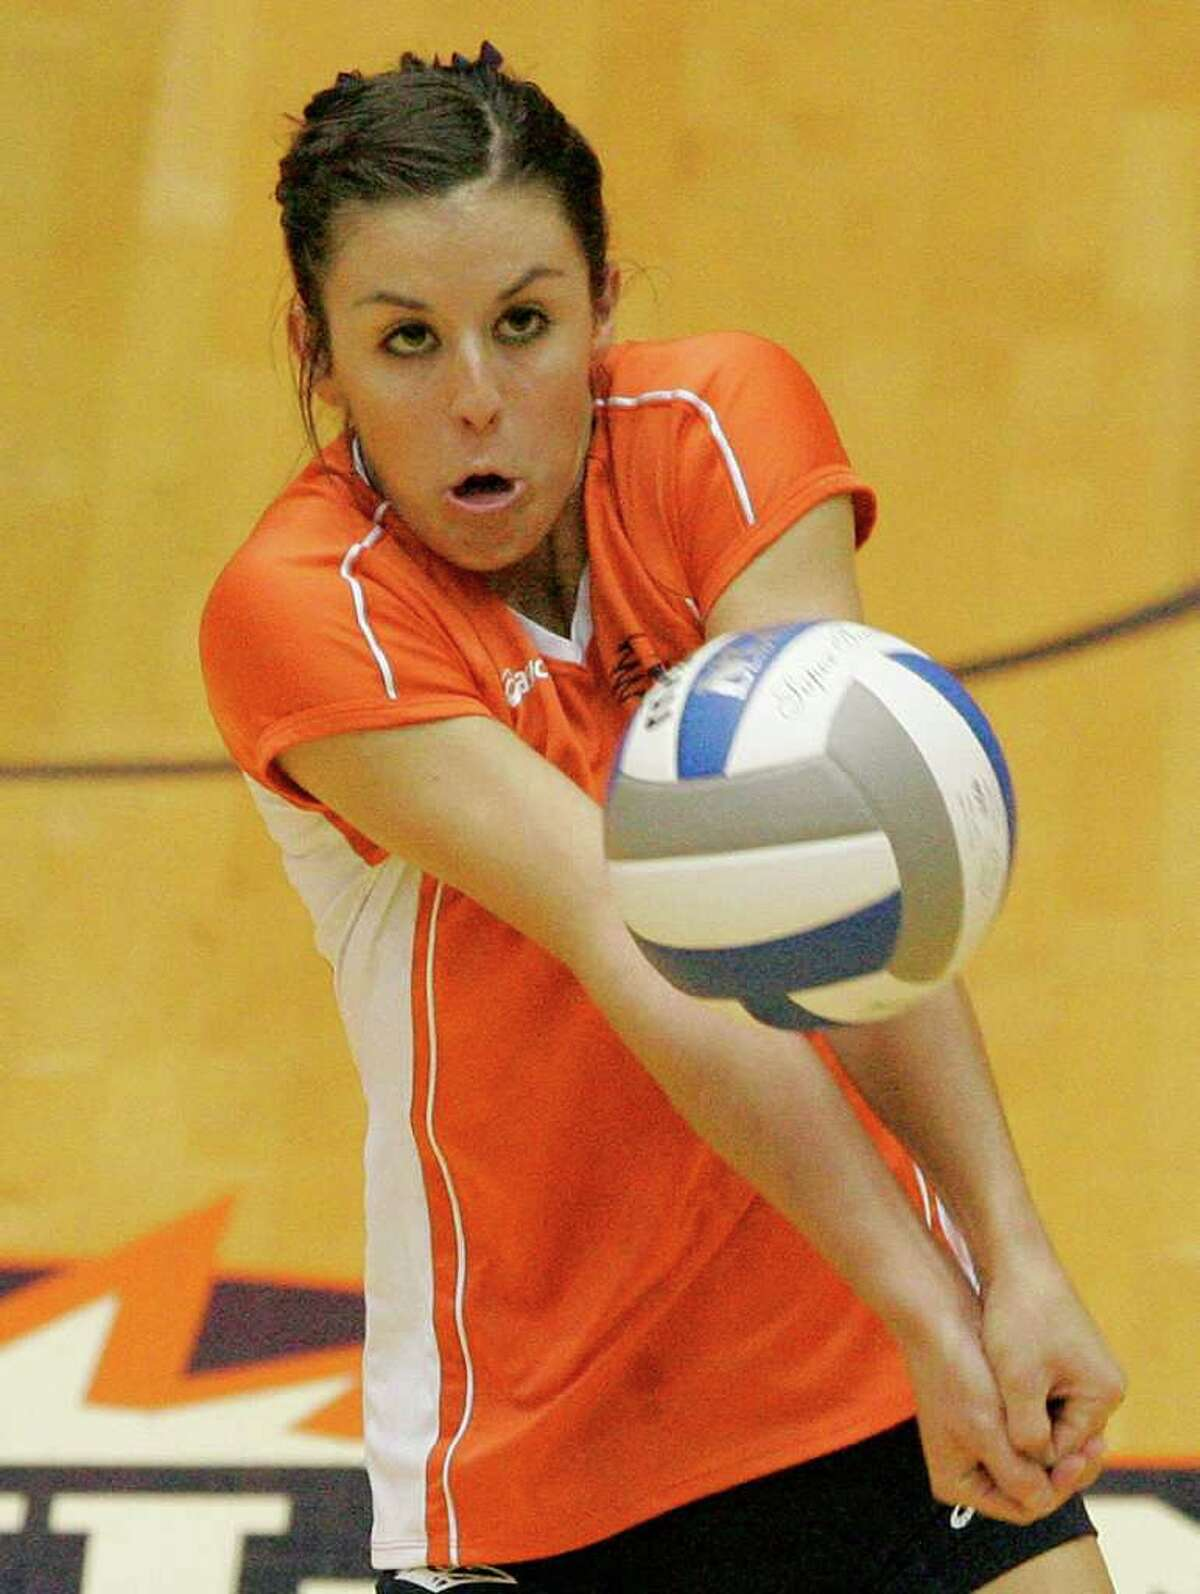 UTSA's Kelsey Jewasko digs during a Southland Conference college volleyball game against Texas A&M-Corpus Christi, Wednesday, Oct. 19, 2011, at UTSA.